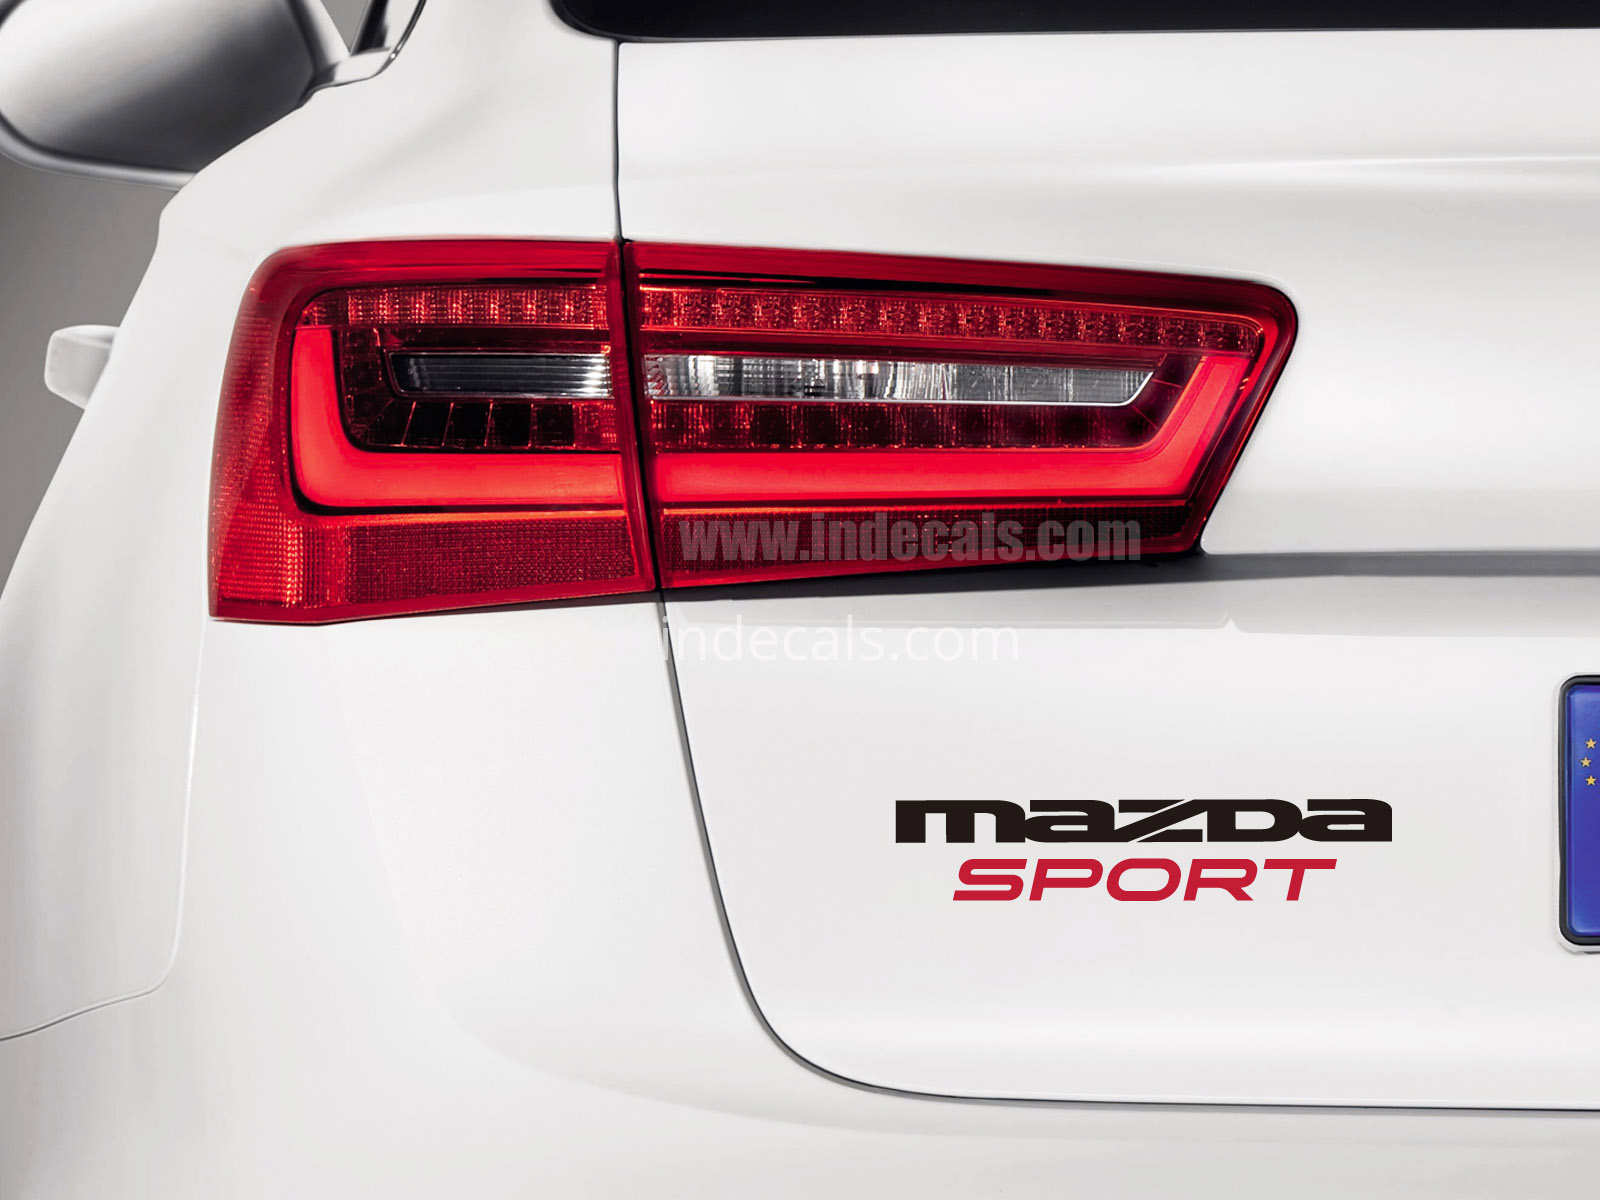 1 x Mazda Sports Sticker for Trunk - Black & Red